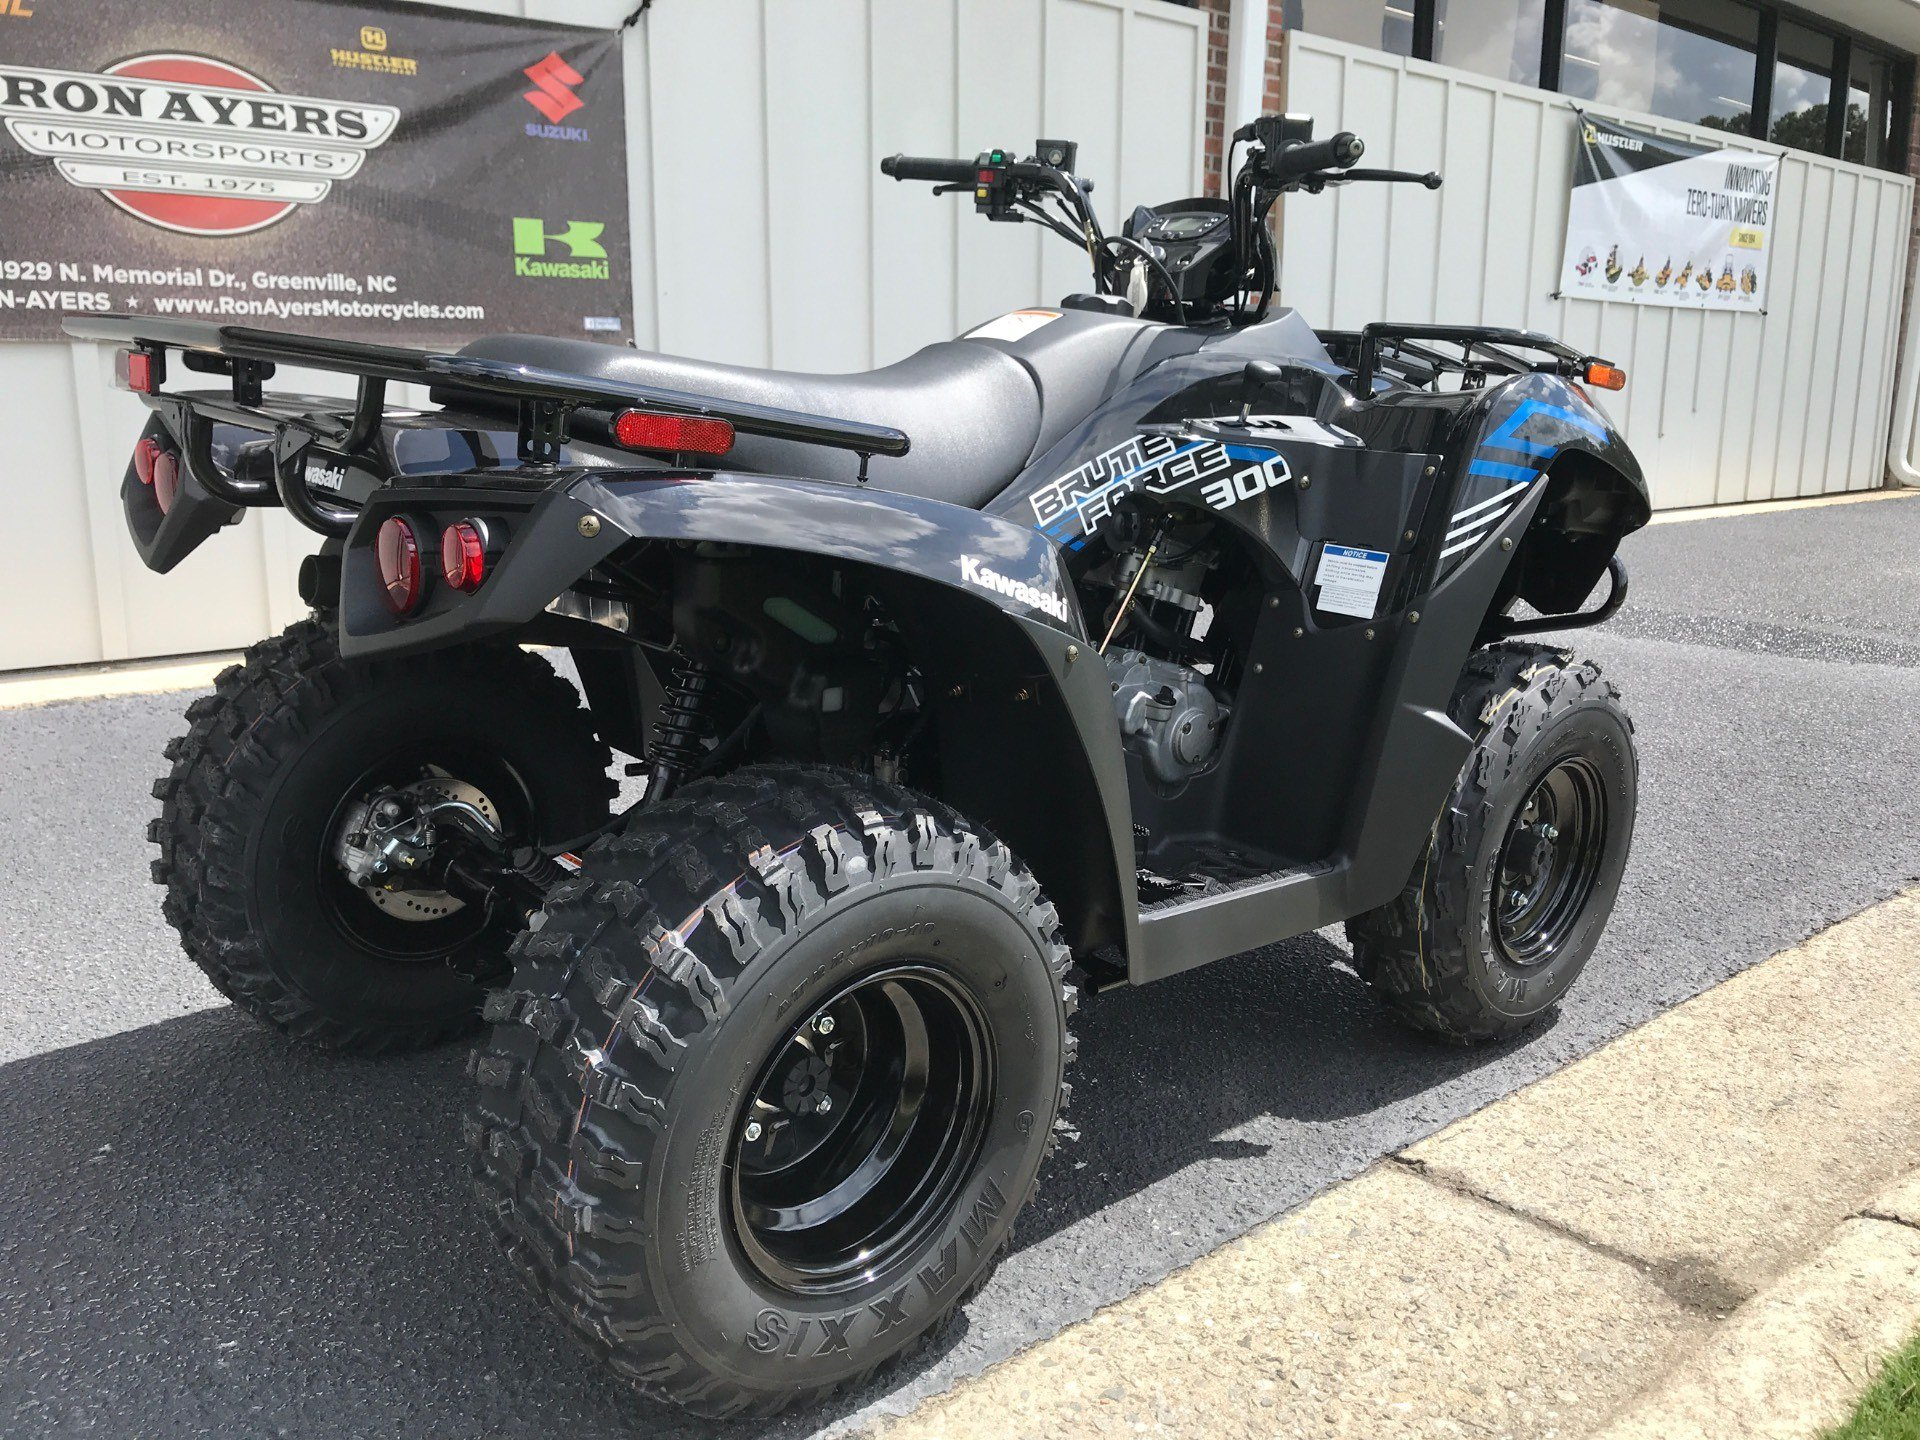 2021 Kawasaki Brute Force 300 in Greenville, North Carolina - Photo 8